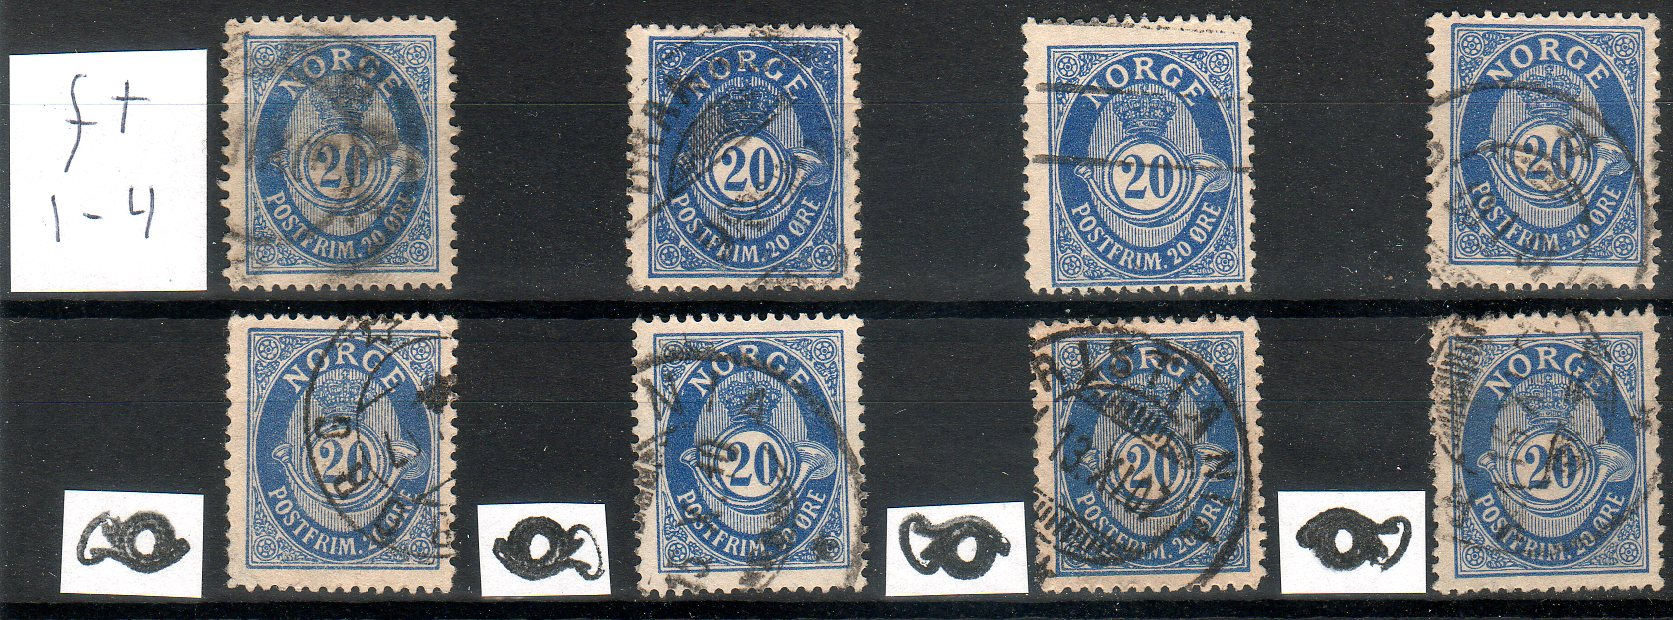 https://www.norstamps.com/content/images/stamps/171000/171560.jpg